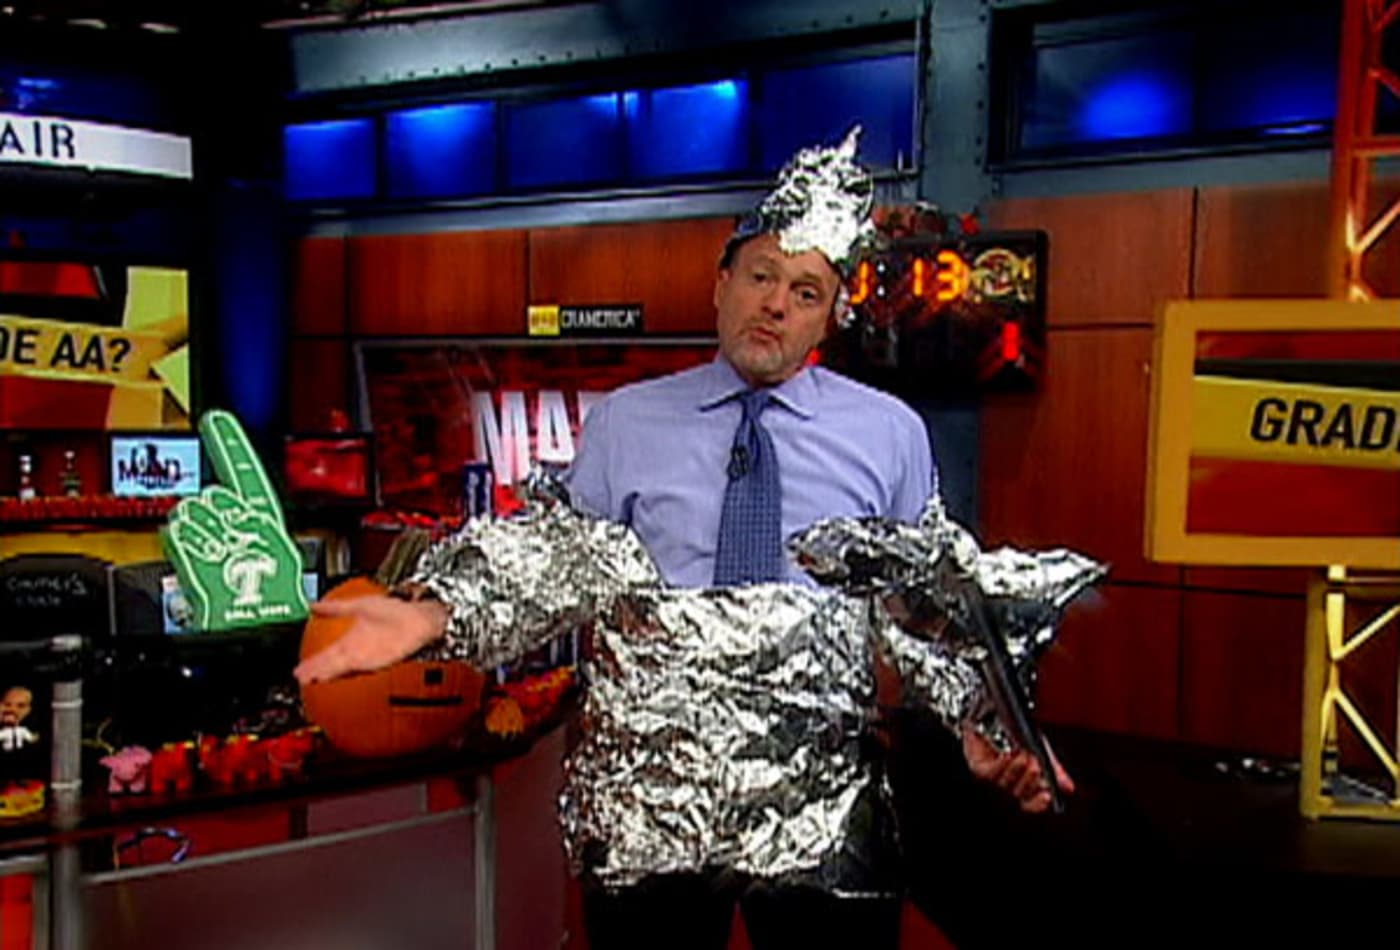 Tin-Man-Craziest-Costume-Ideas-Jim-Cramer.jpg